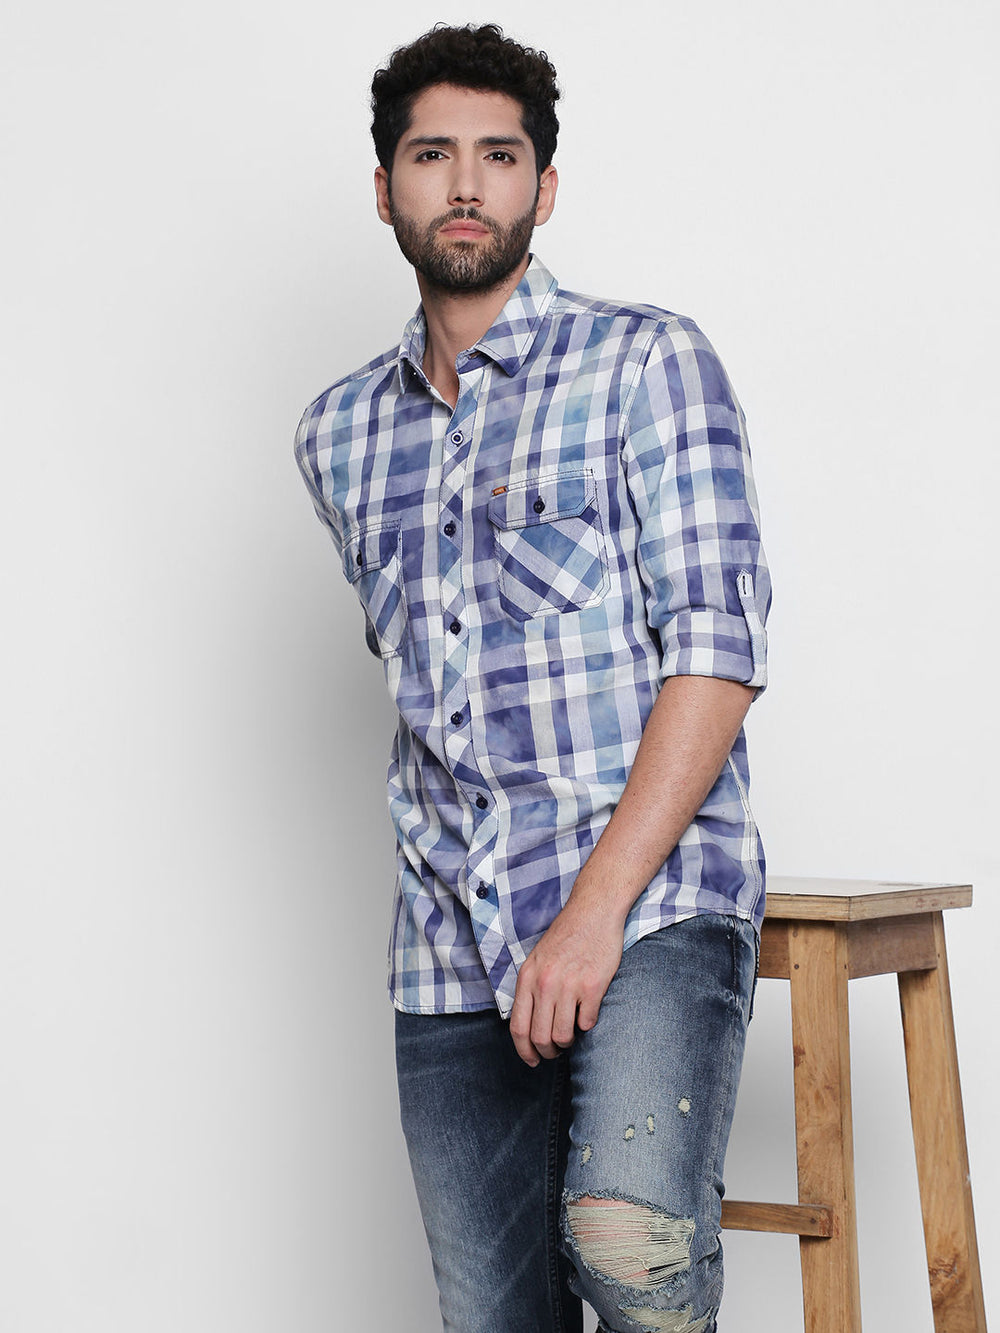 Disrupt Blue Cotton Fabric Full Sleeve Checkered Shirt For Men's